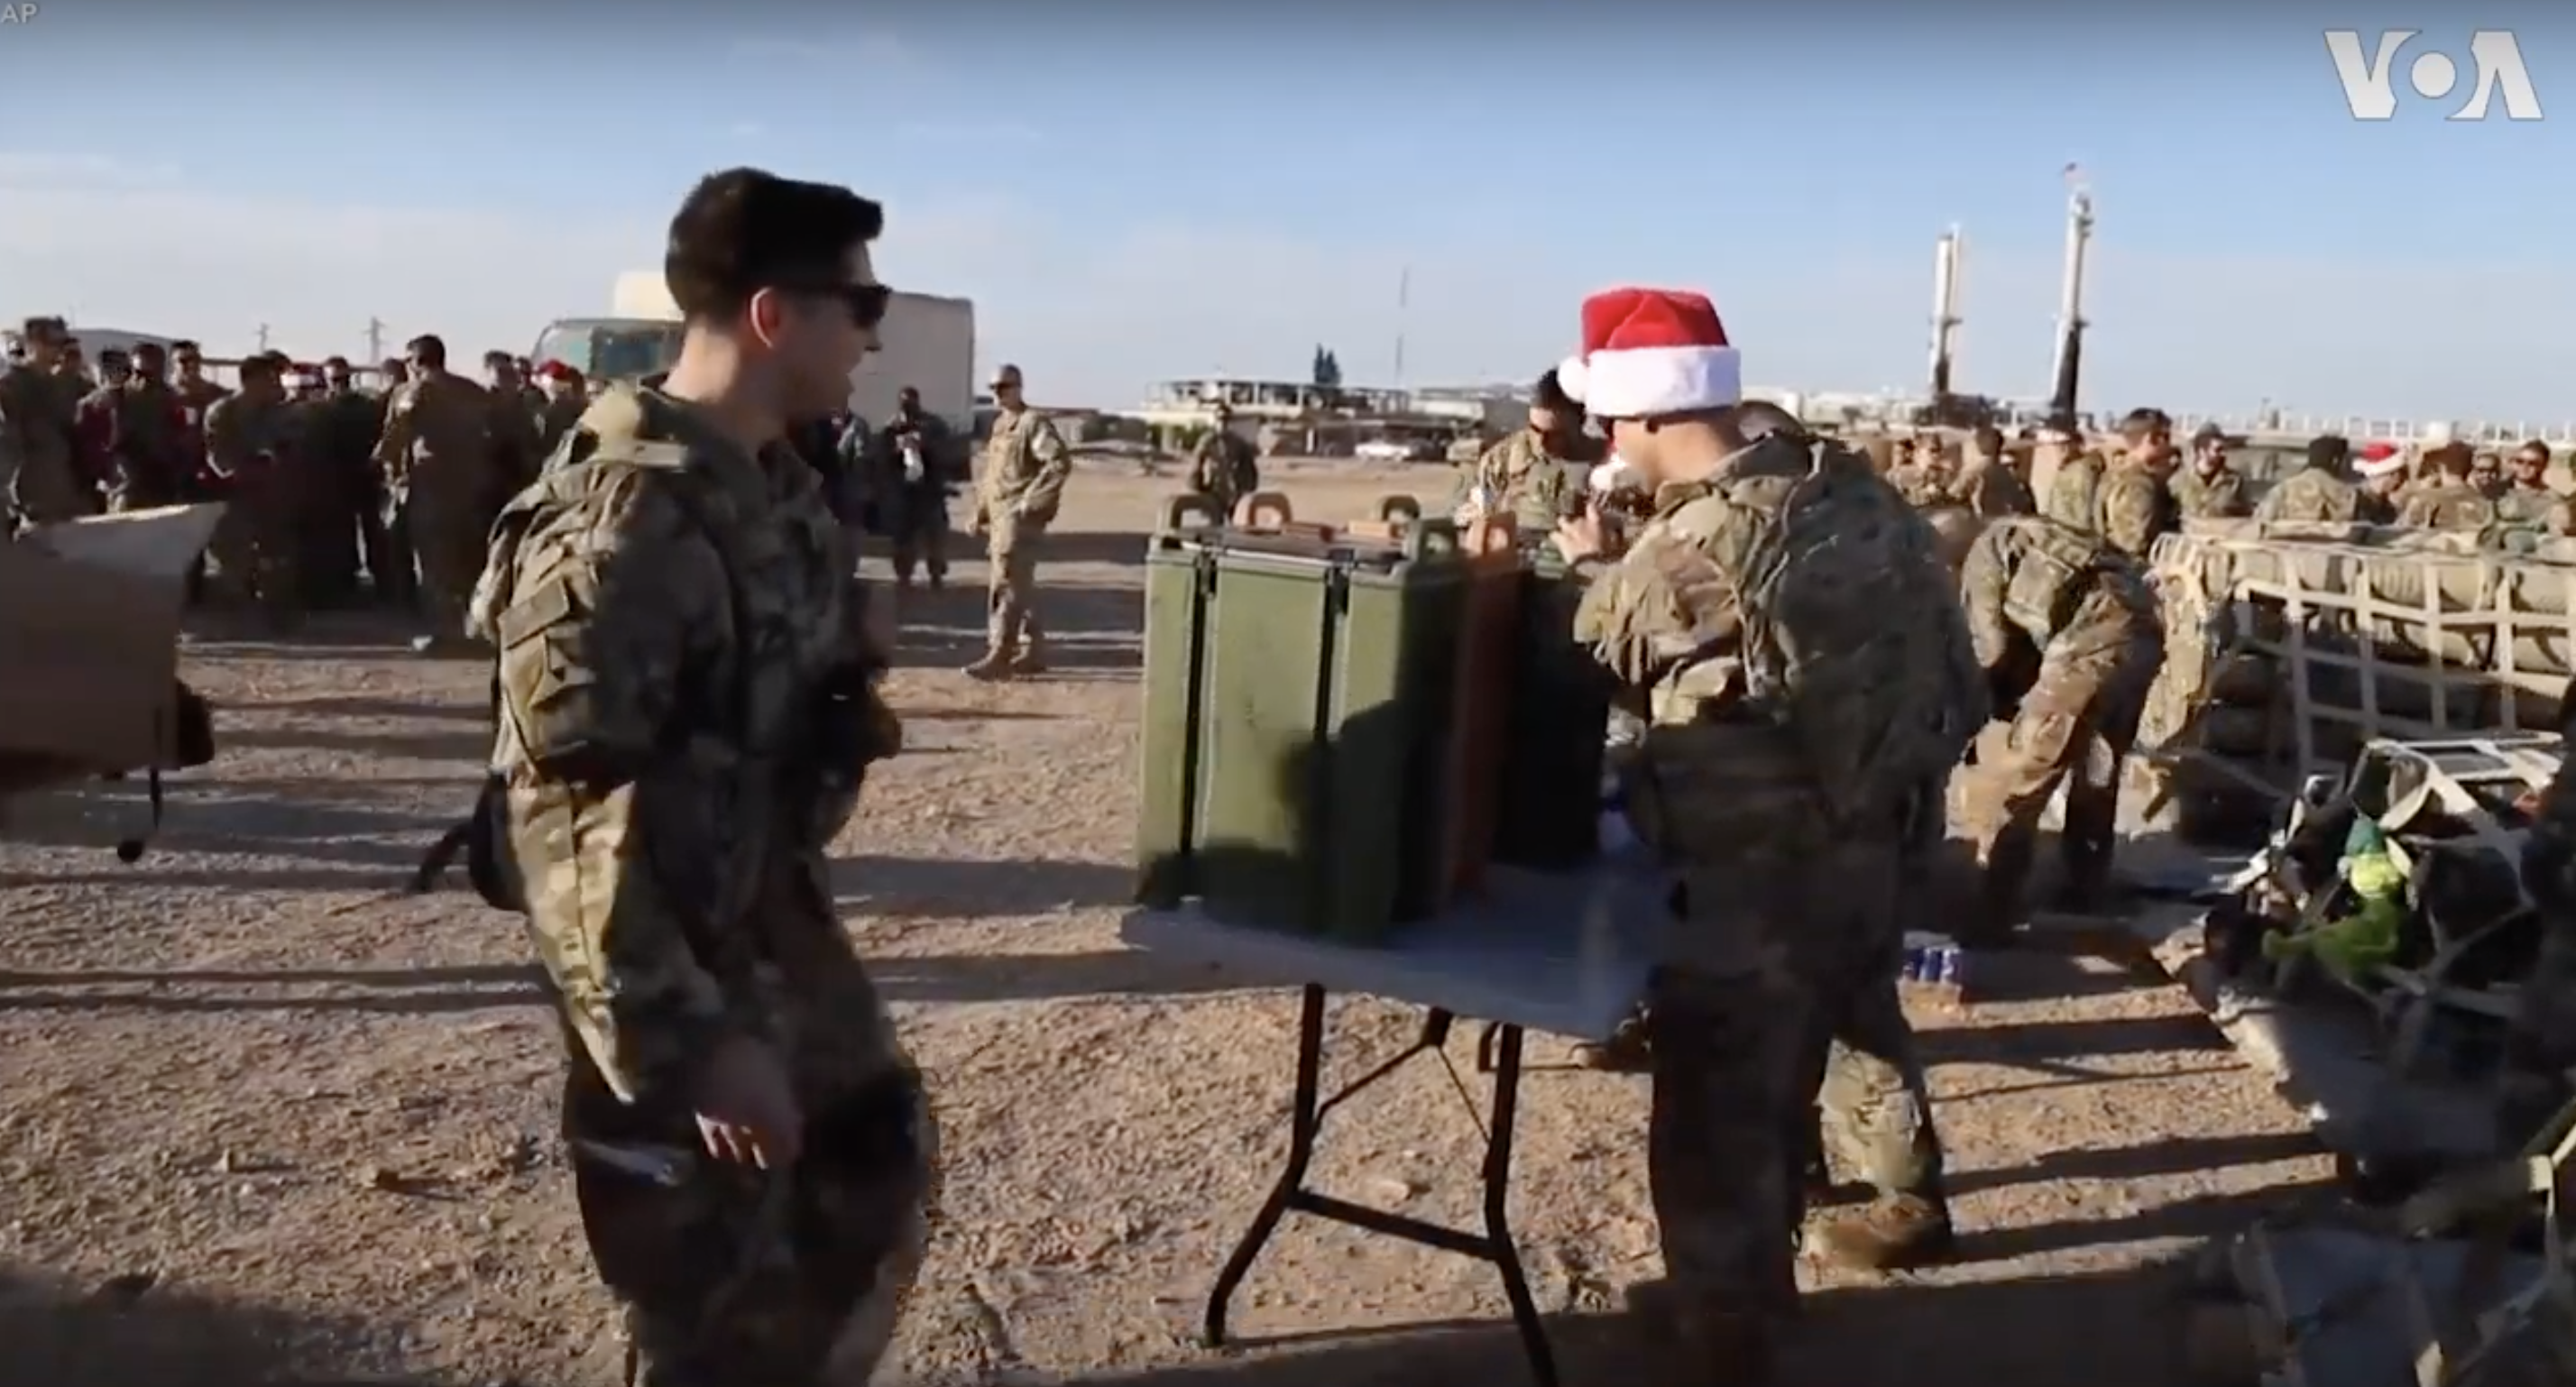 Christmas presents were delivered to American troops serving in Syria. (YouTube/Screenshot/Public — User: VOA)